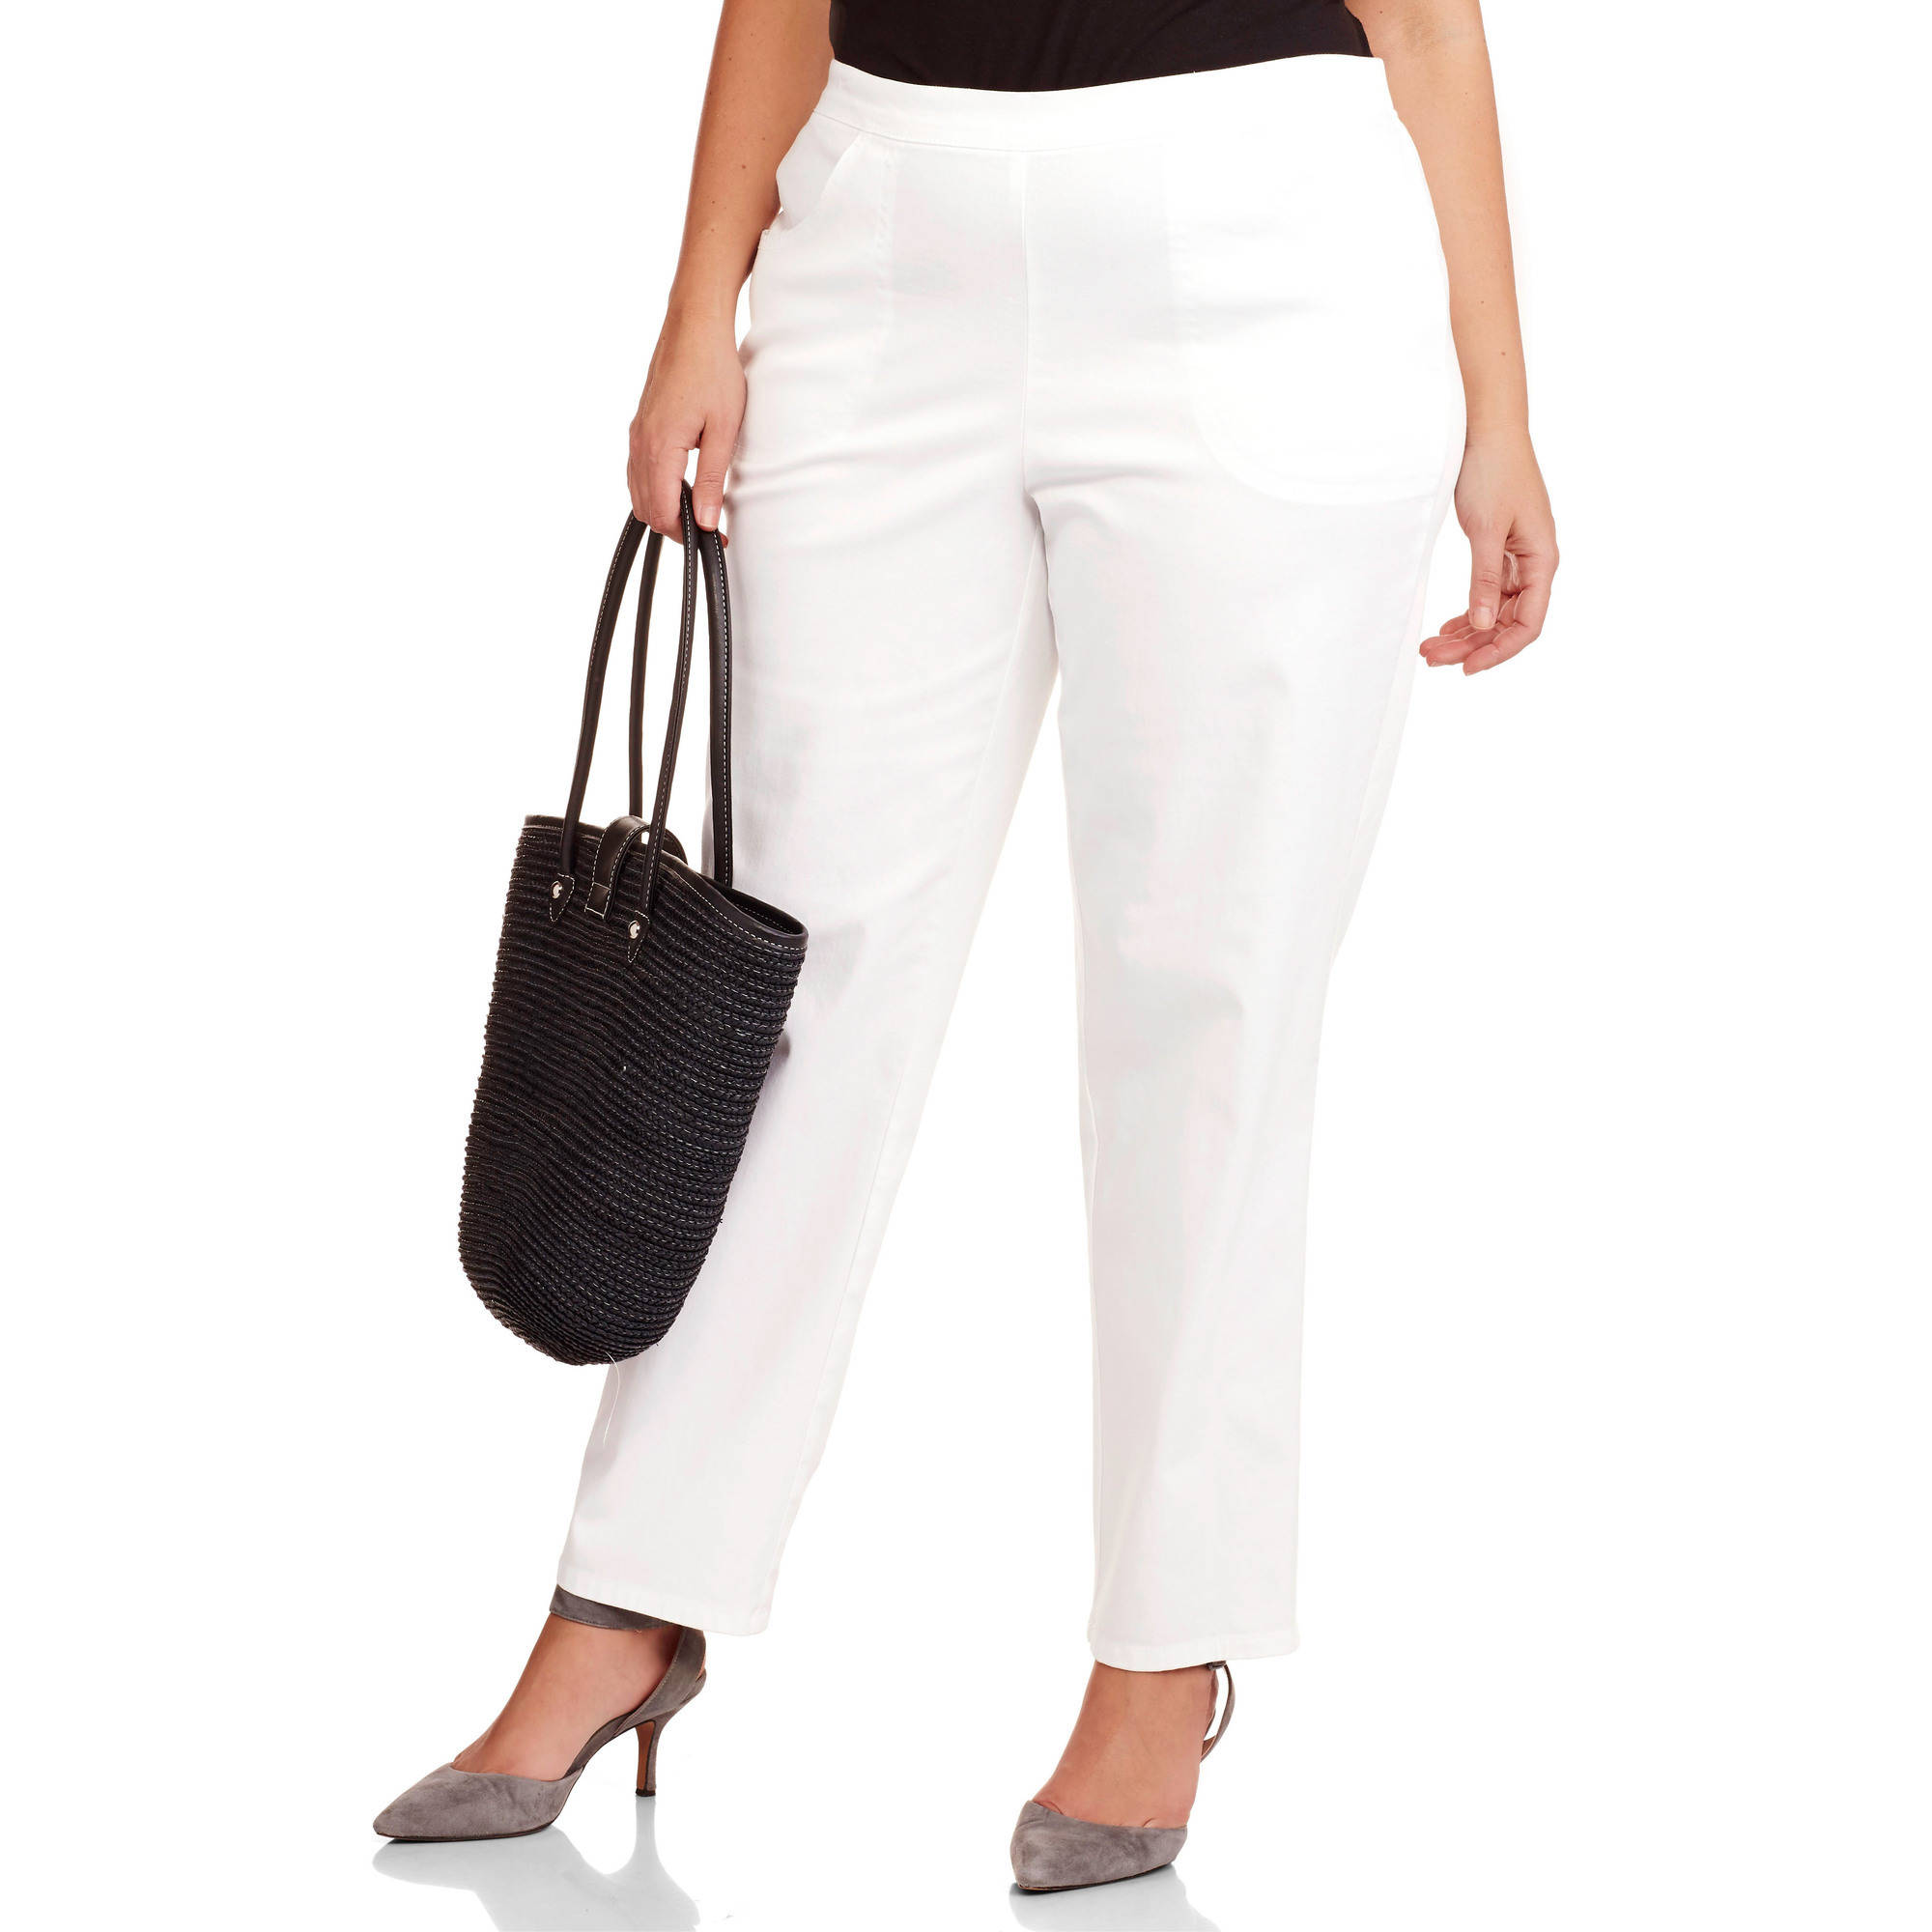 Just My Size Women's Plus-Size 2-Pocket Stretch Pull-On Pants